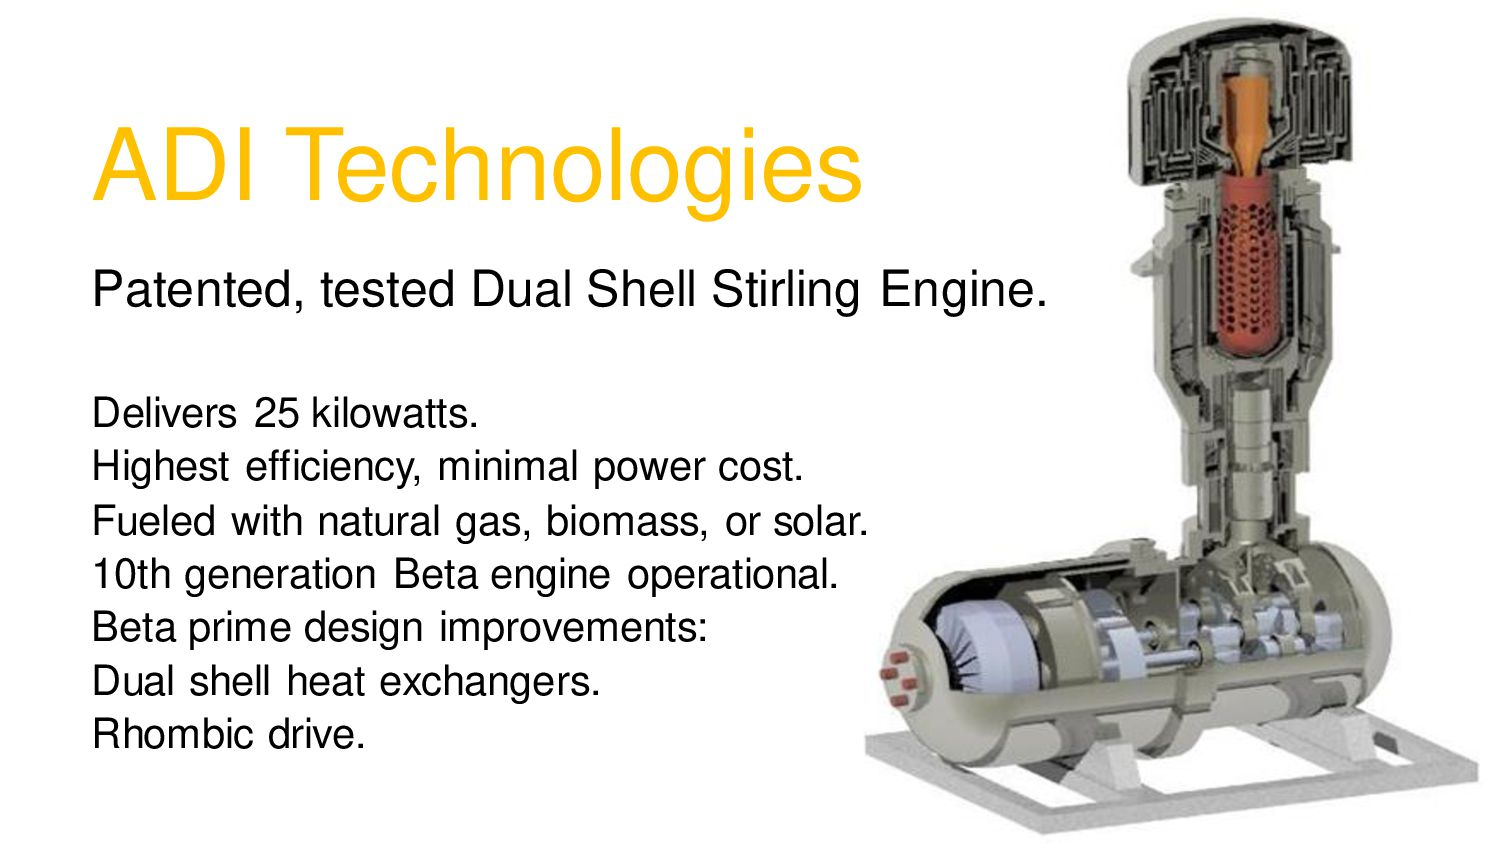 ADI Technologies Patented, tested Dual Shell St...